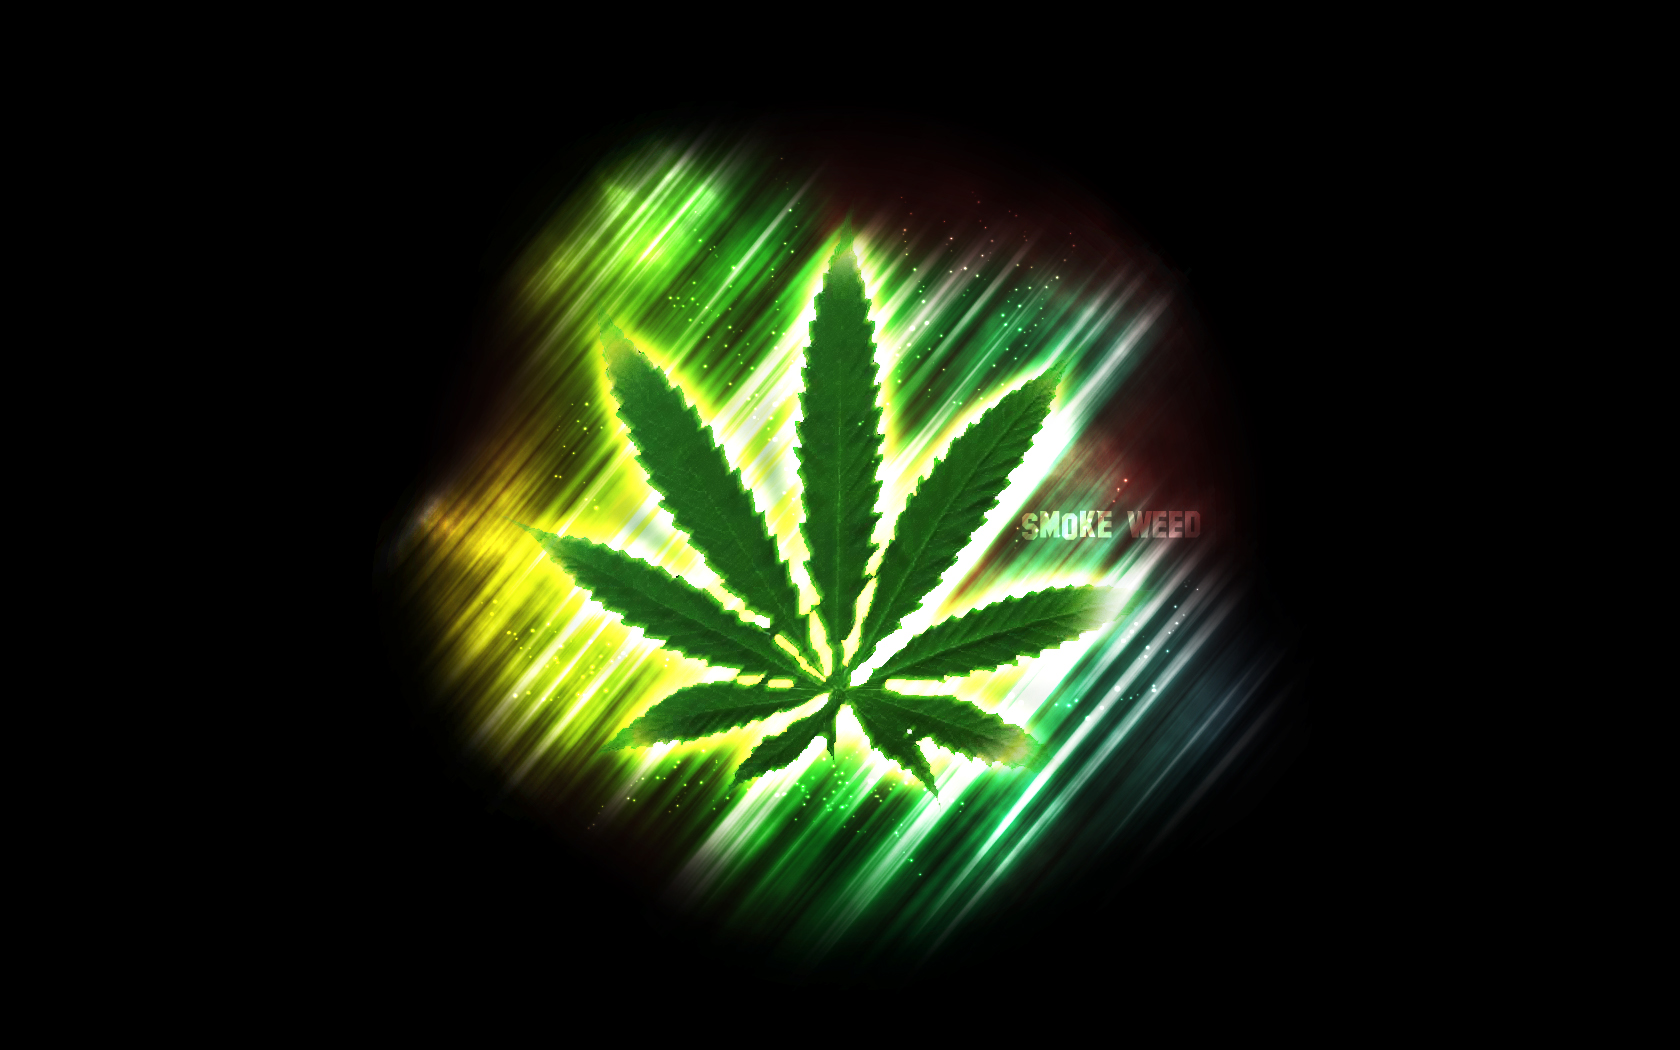 Related Pictures Weed Smoke Drawings Funny Jpg